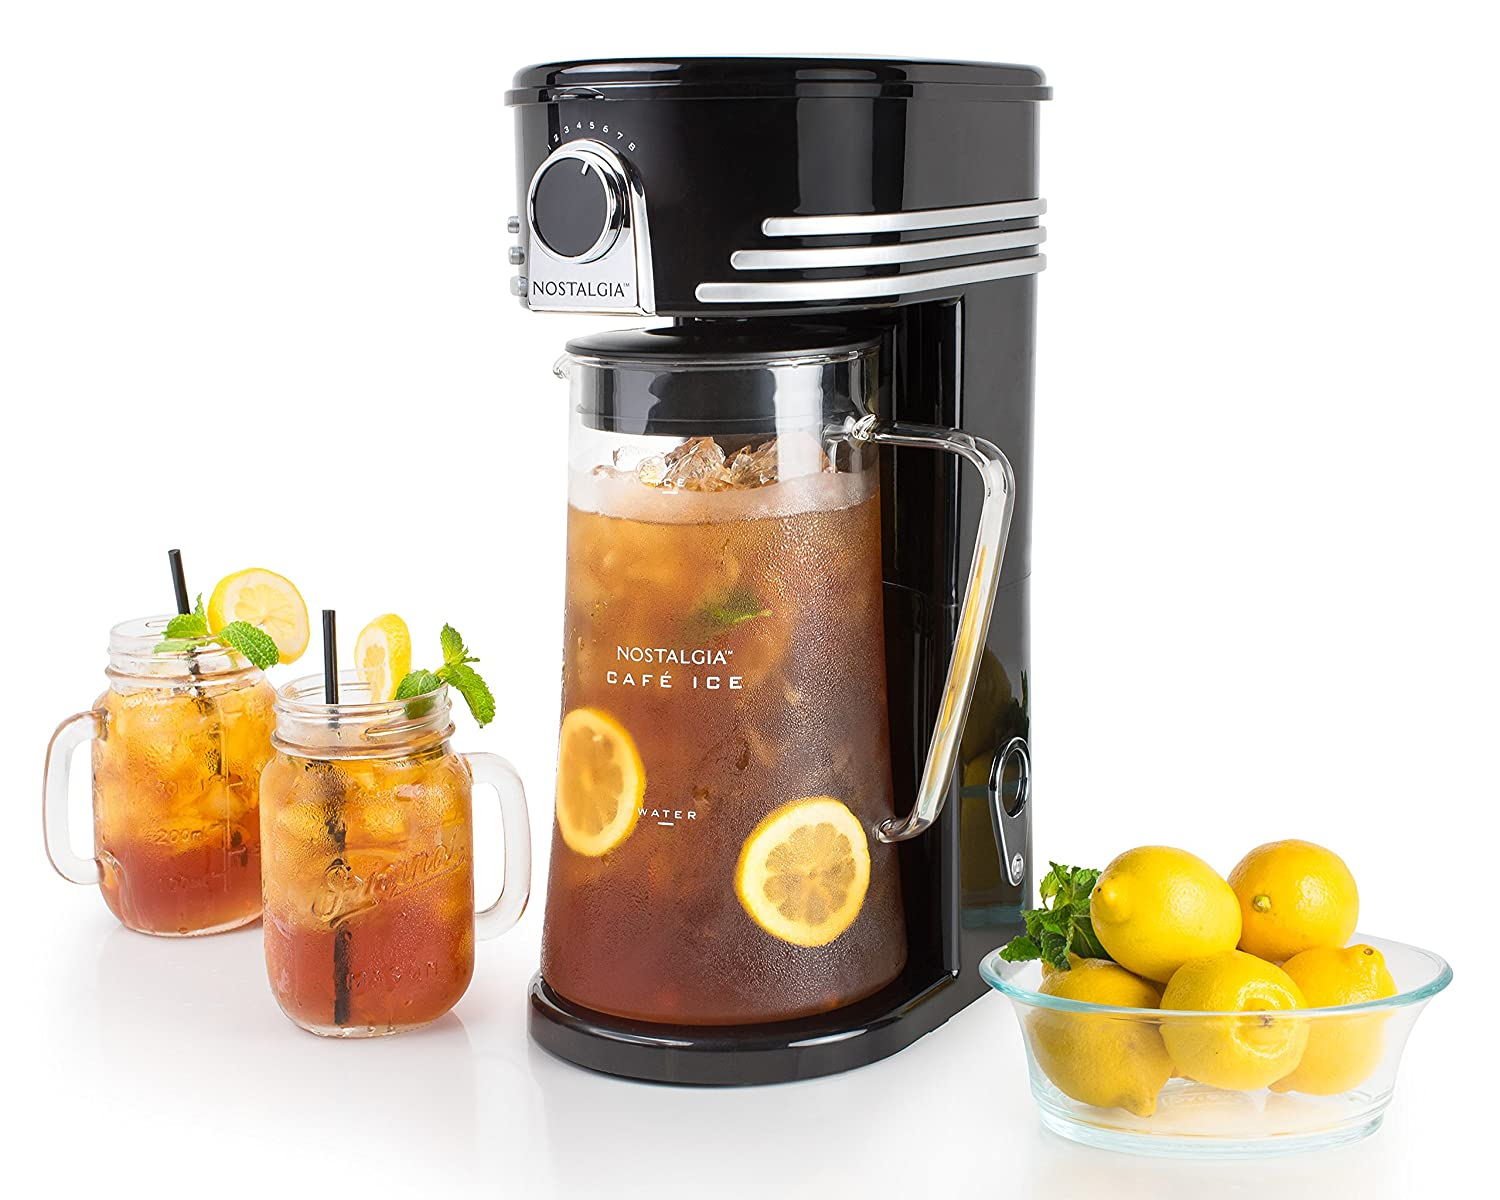 The Top 5 Best Iced Tea Maker To Cool You Down On A Hot Summer Day! 4 #cookymom